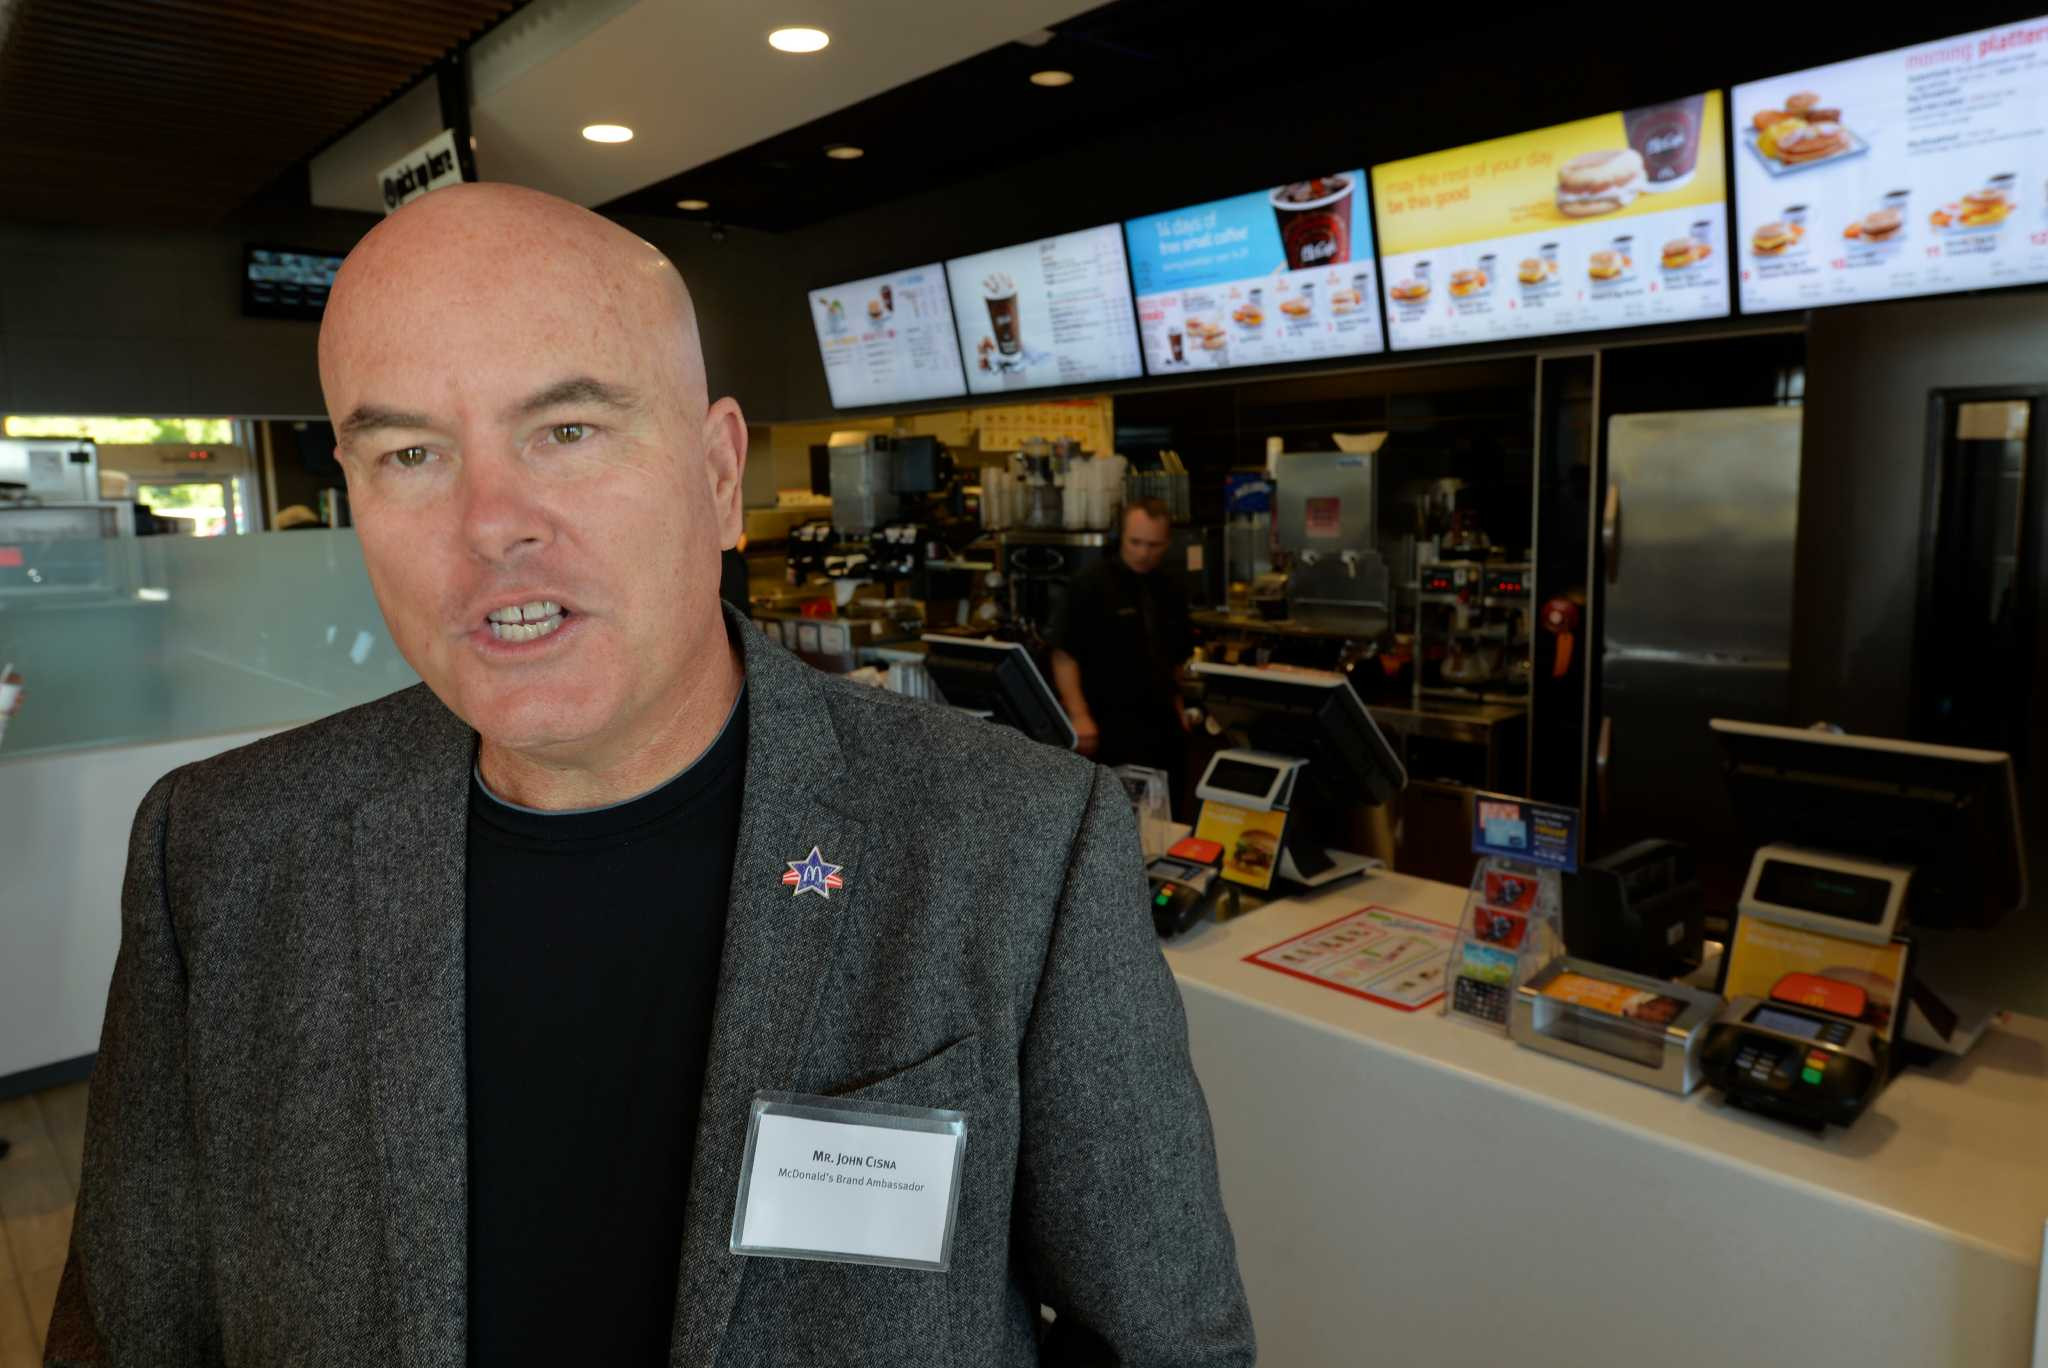 faced falling s mcdonald s promotes healthy menu options faced falling s mcdonald s promotes healthy menu options times union